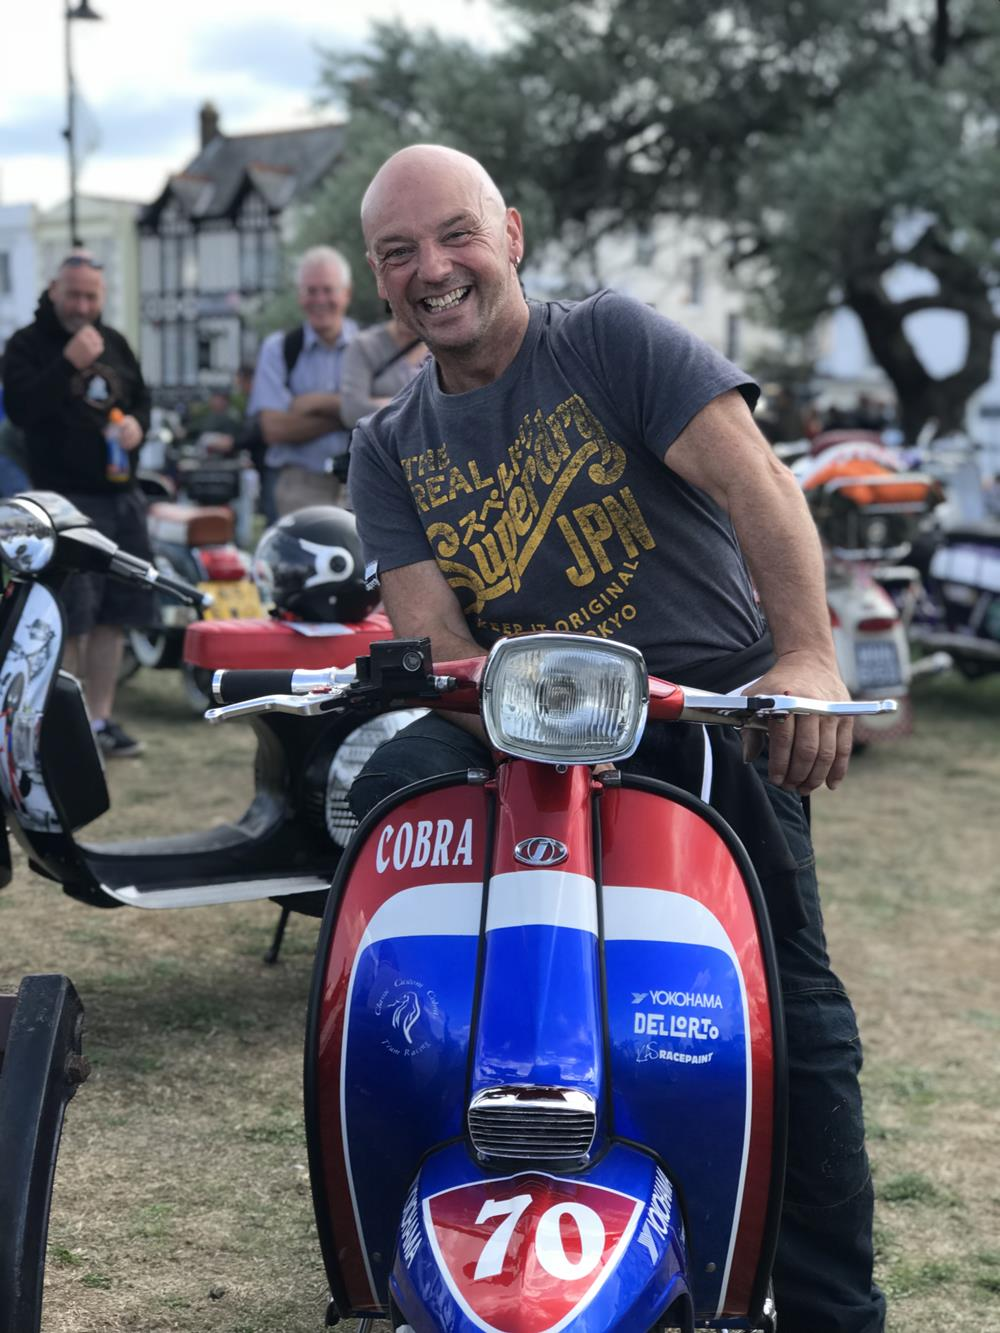 Elliot Ede on his Lambretta street style scooter